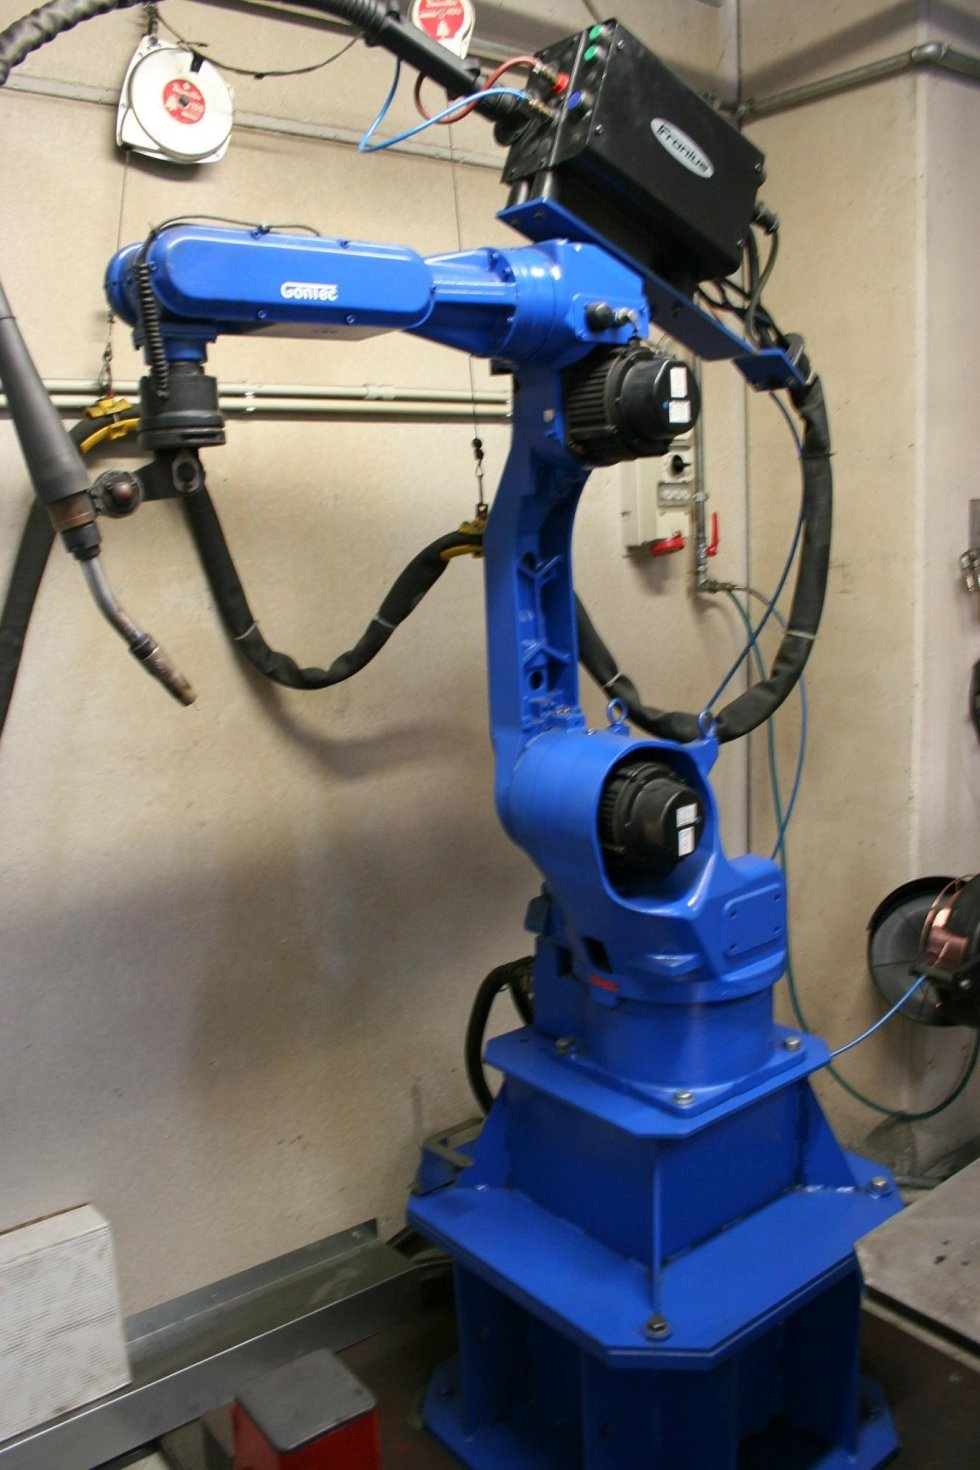 MOTOMAN welding robot for welding large production lots